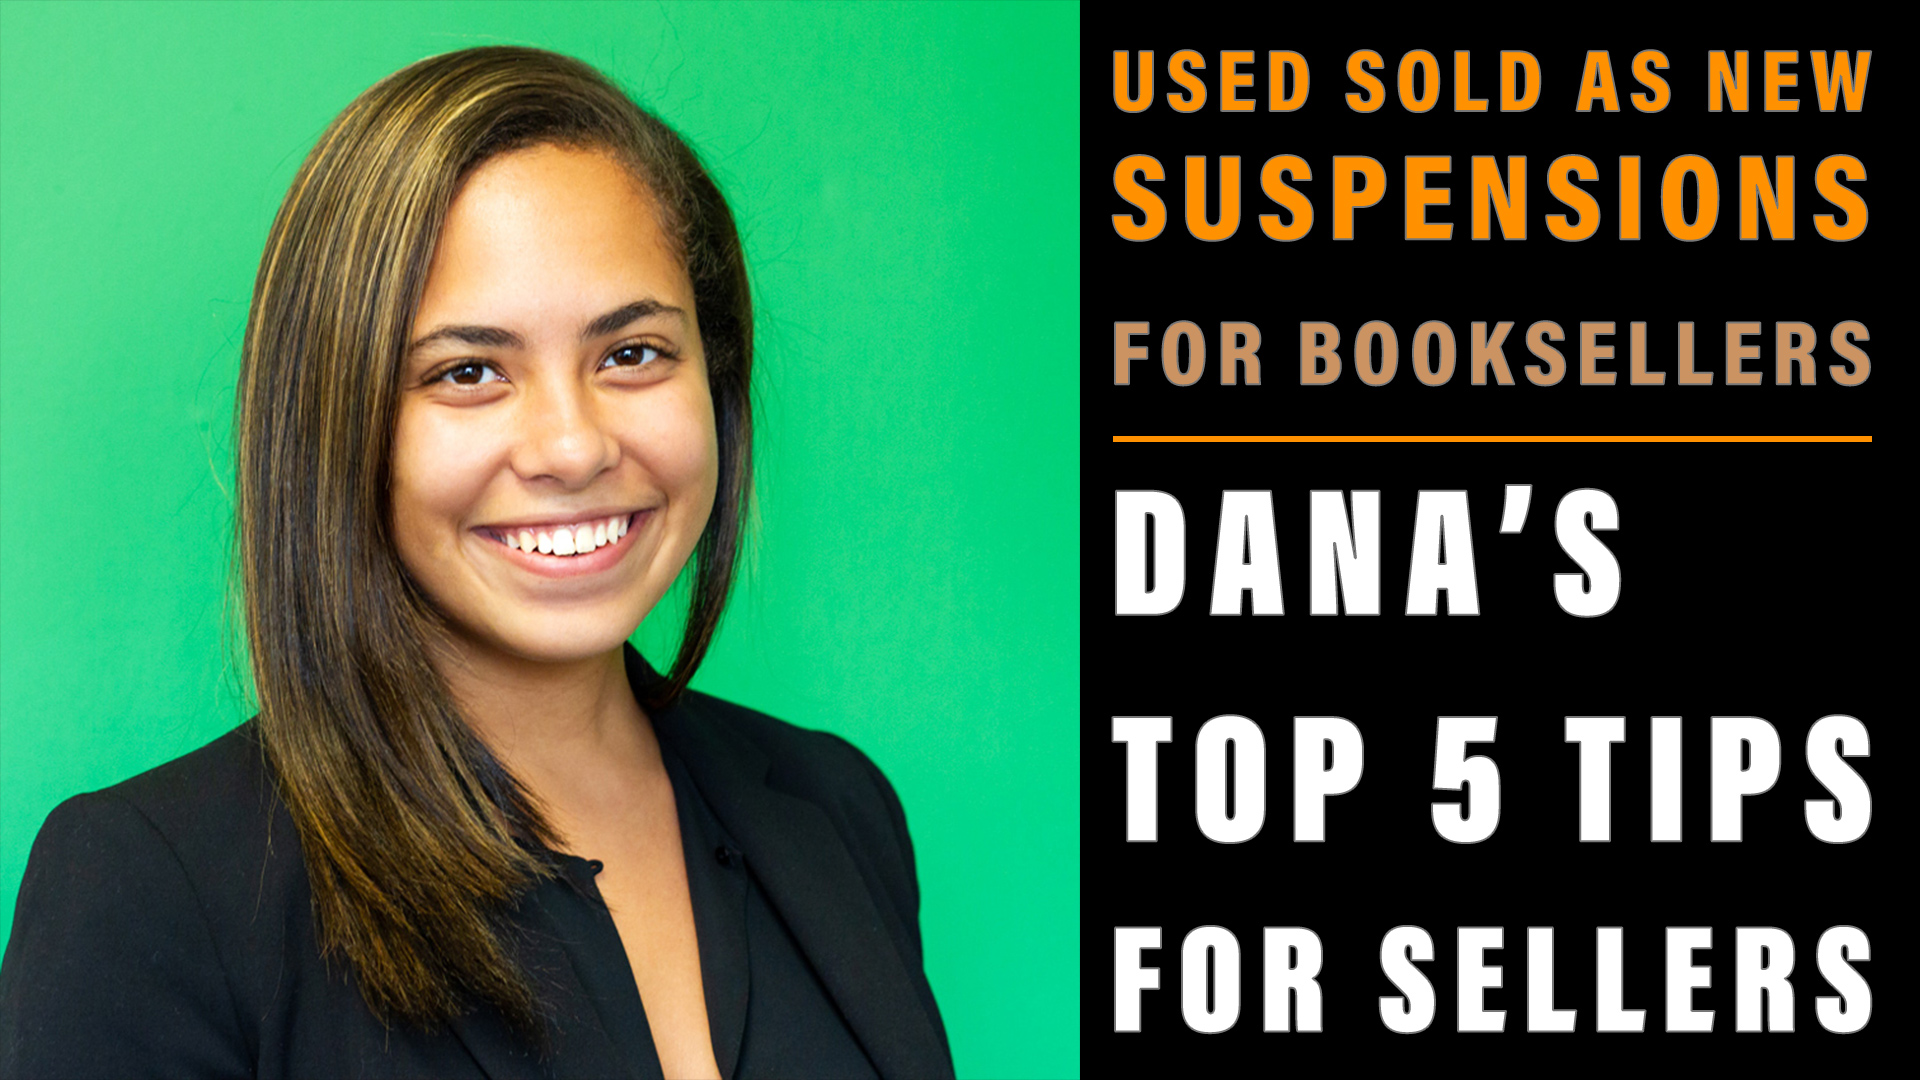 Used Sold as New Suspensions for Booksellers